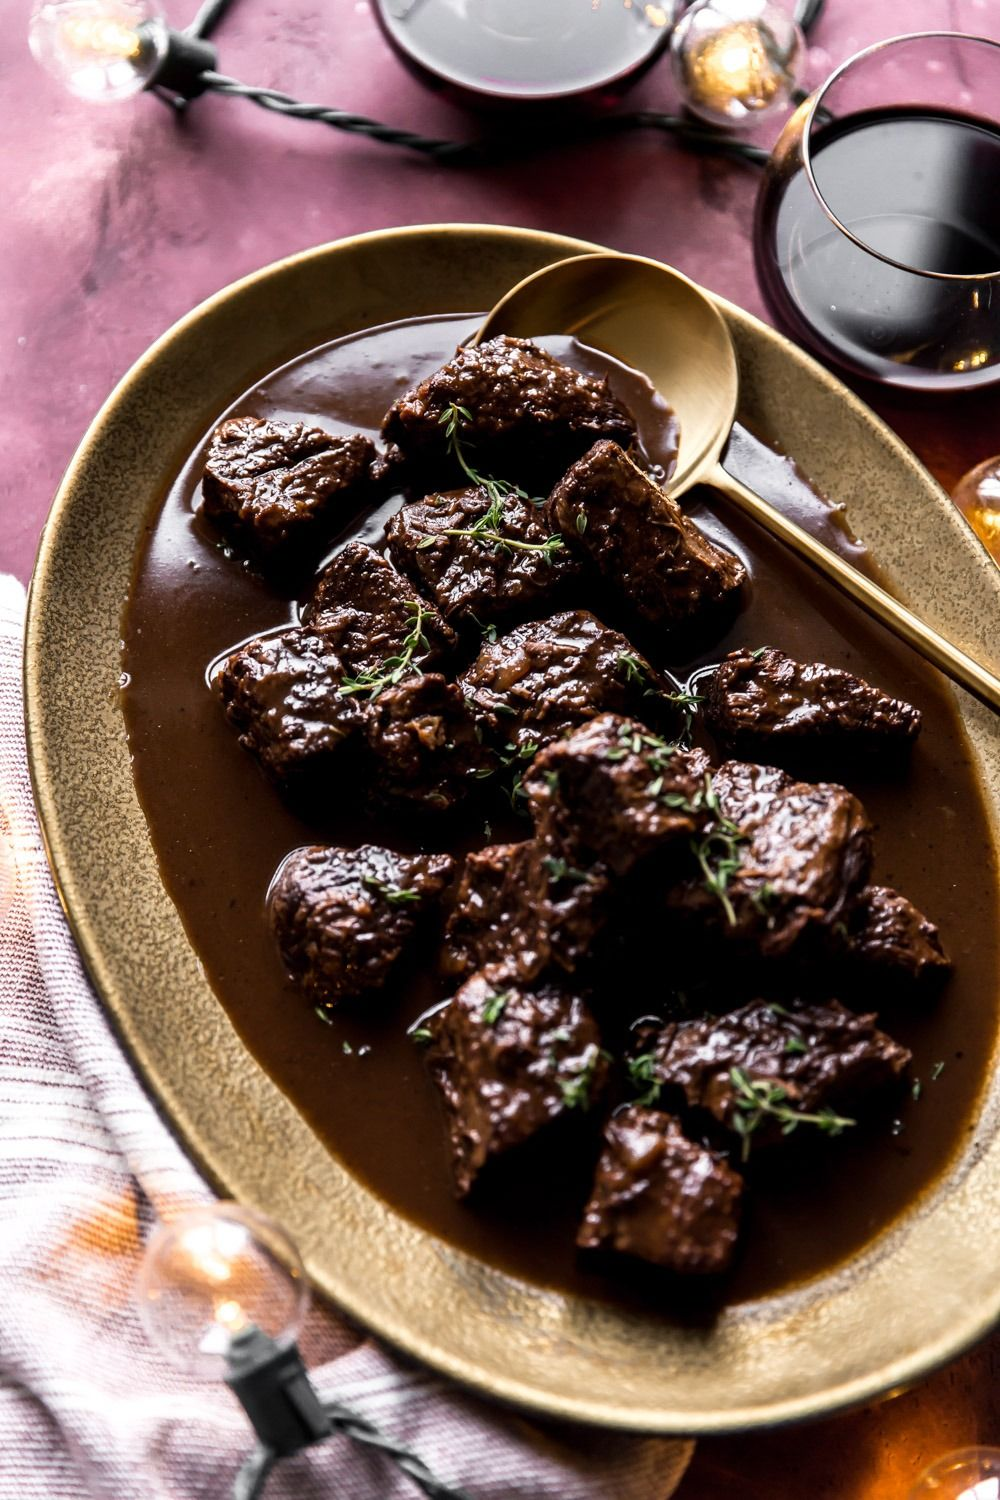 Red Wine Braised Beef Tips Kj And Company Recipe Braised Beef Braised Beef Tips Recipe Beef Tips